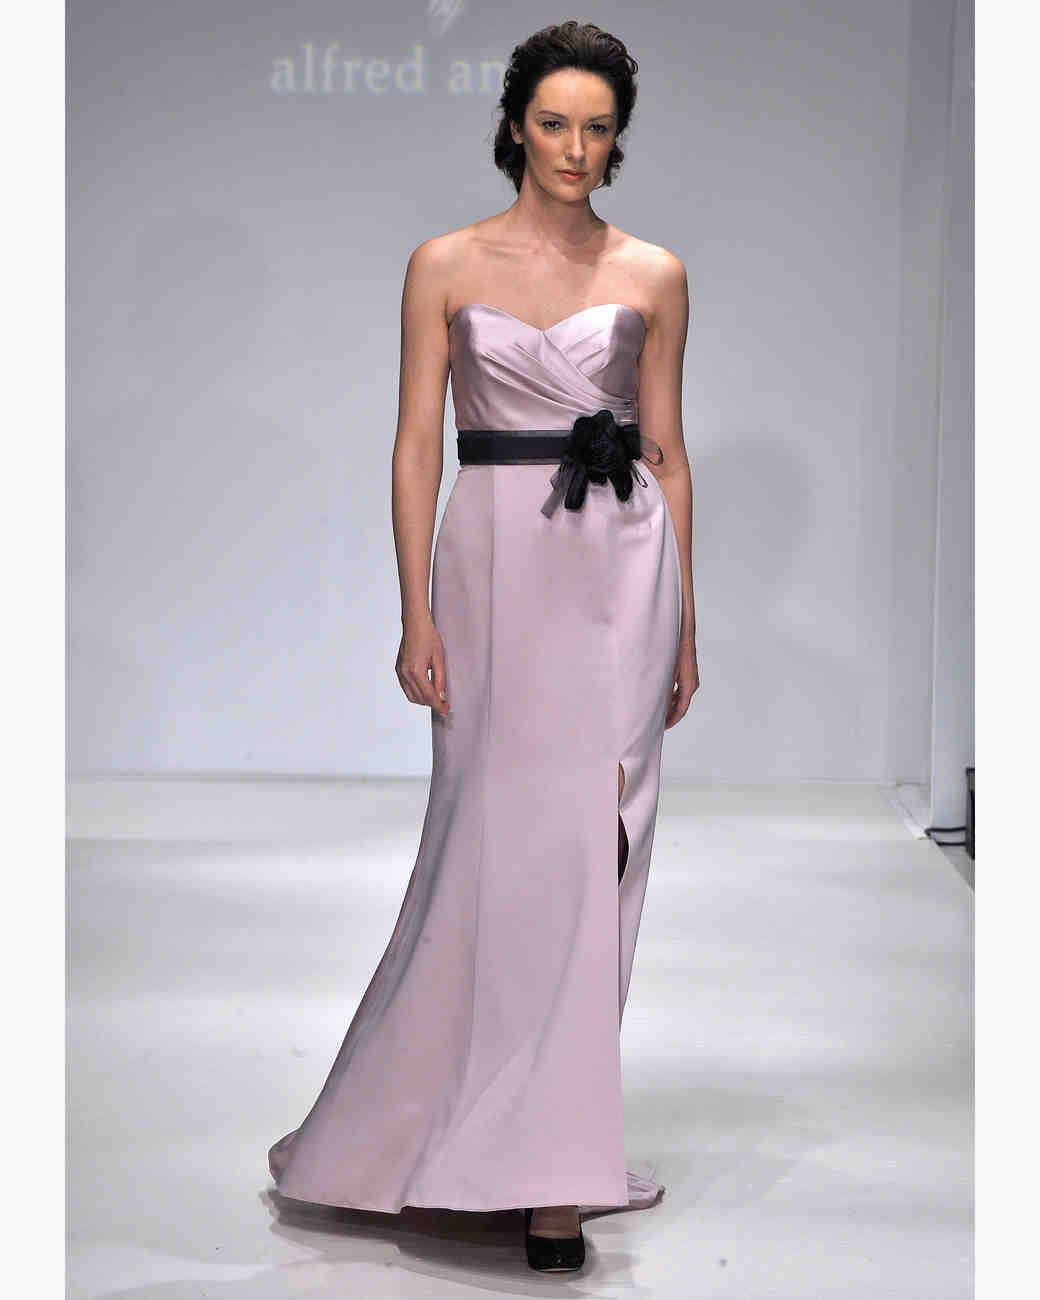 Disney fairy tale weddings by alfred angelo fall 2012 bridesmaid disney fairy tale weddings by alfred angelo fall 2012 bridesmaid collection martha stewart weddings ombrellifo Images